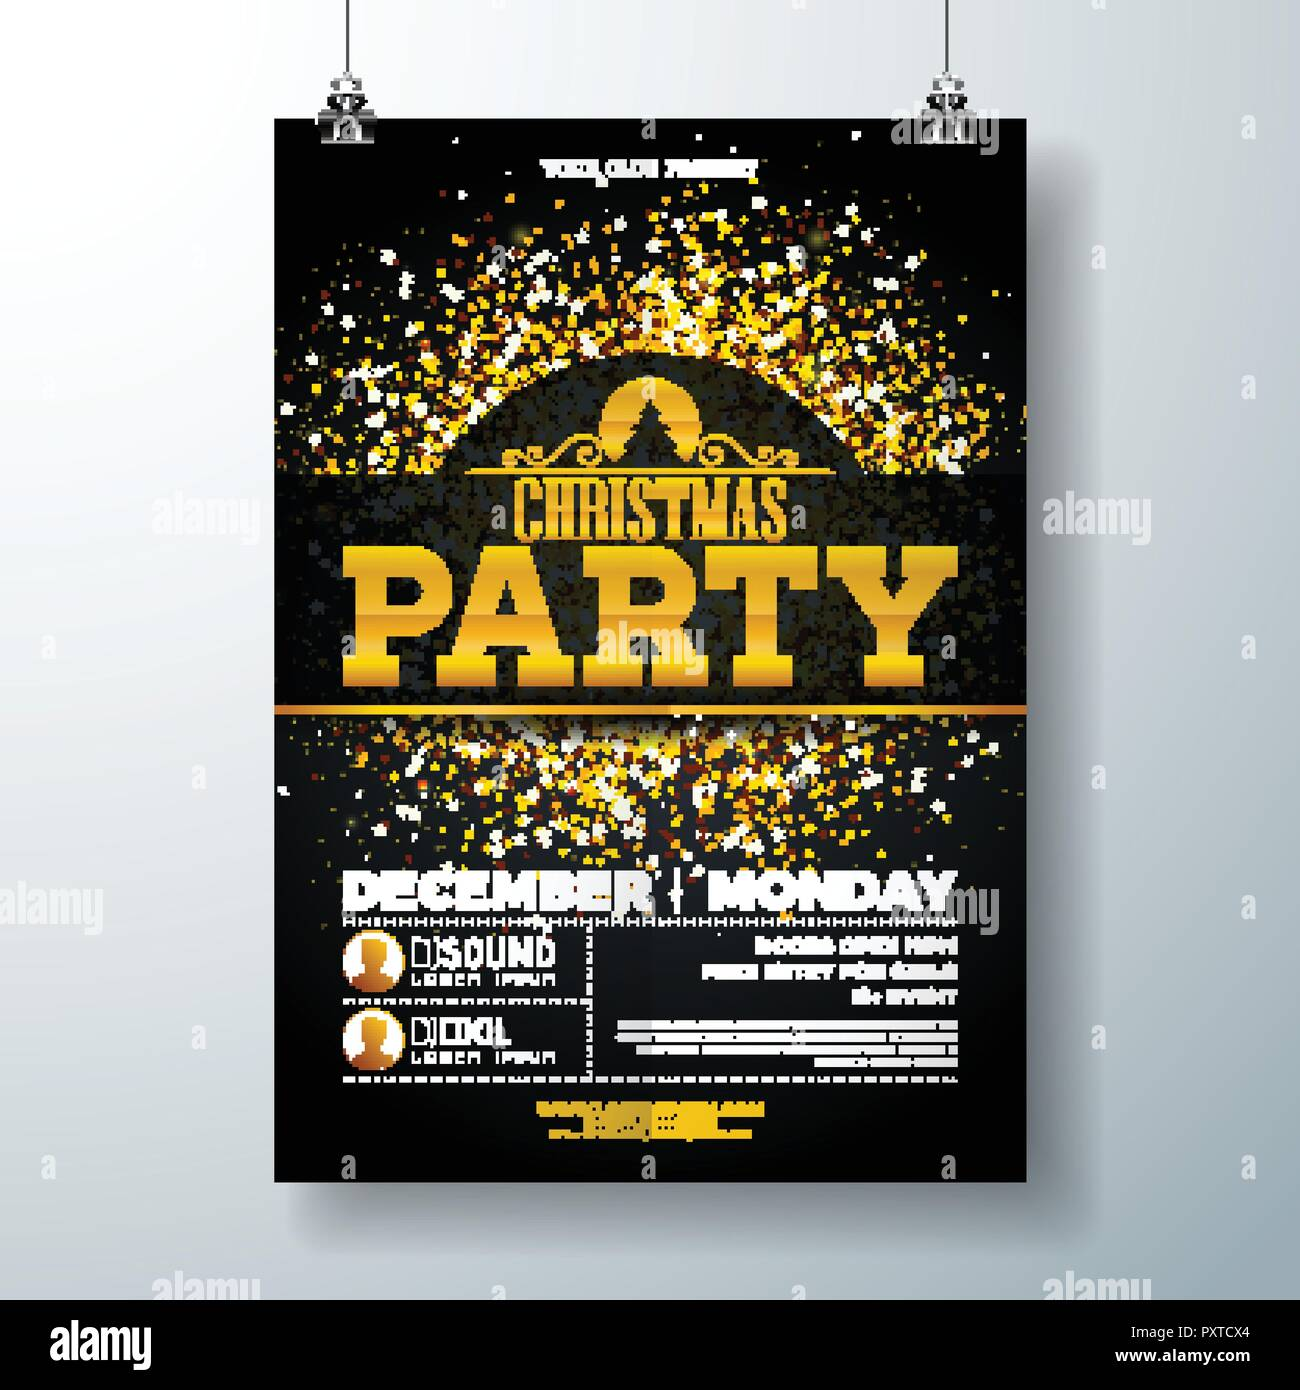 Merry Christmas Party Poster Design Template with Gold Glitter and Holiday Typography Elements on Black Background. Vector Holiday Celebration Plyer Illustration for Invitation or Banner. Stock Vector